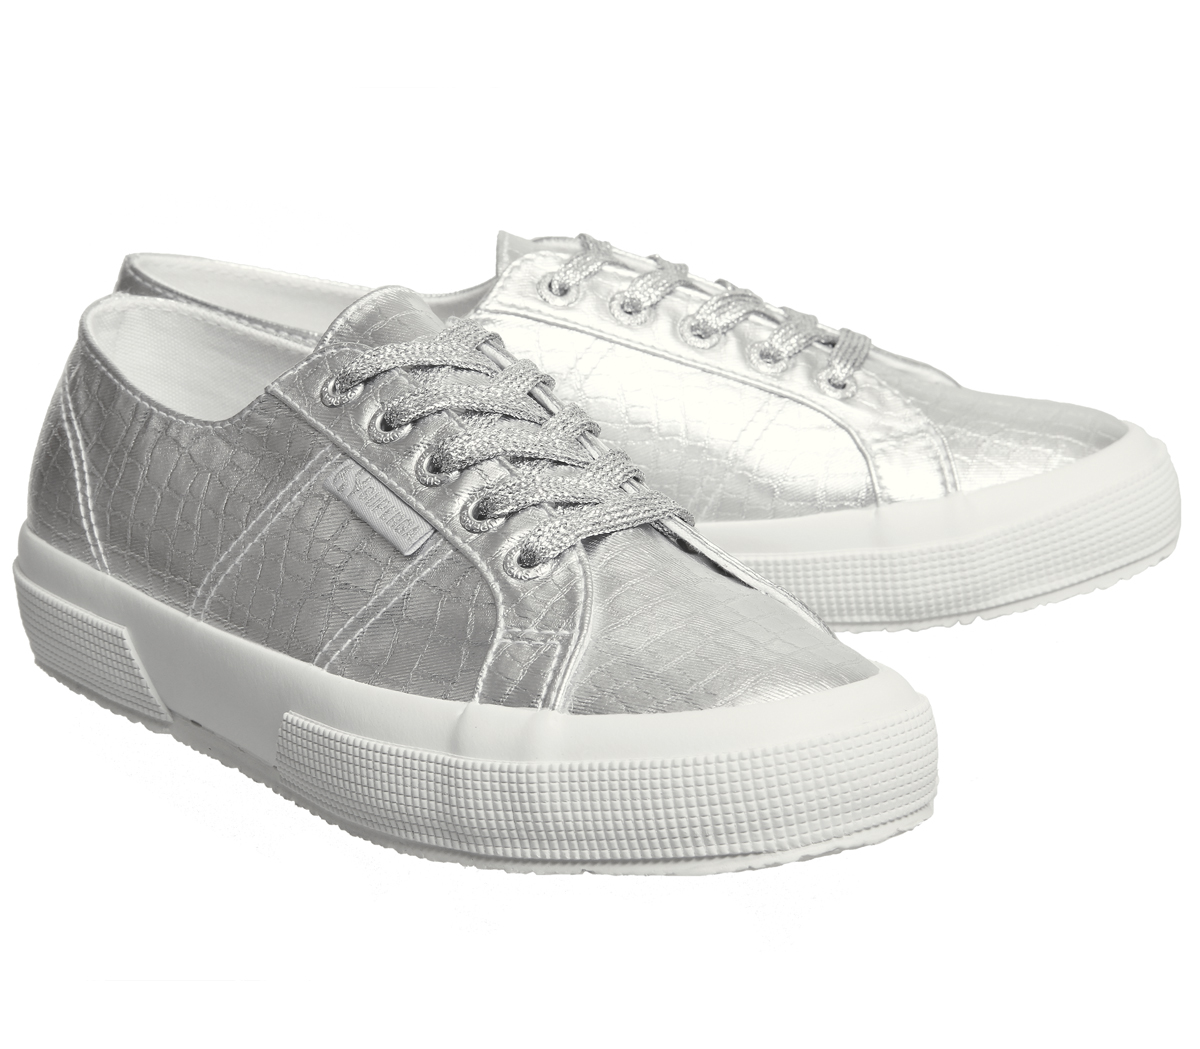 1677d1e97659 Womens-Superga-2750-Trainers-Silver-Embossed-Trainers-Shoes thumbnail